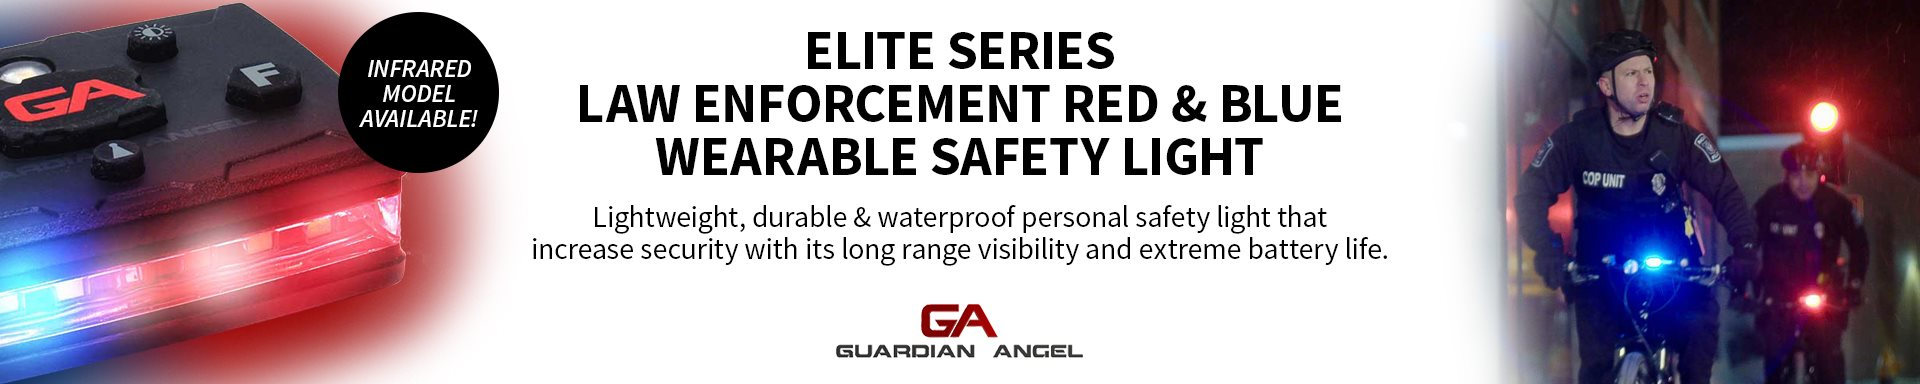 GA - Elite Series Law Enforcement Red/Blue Wearable Safety Light